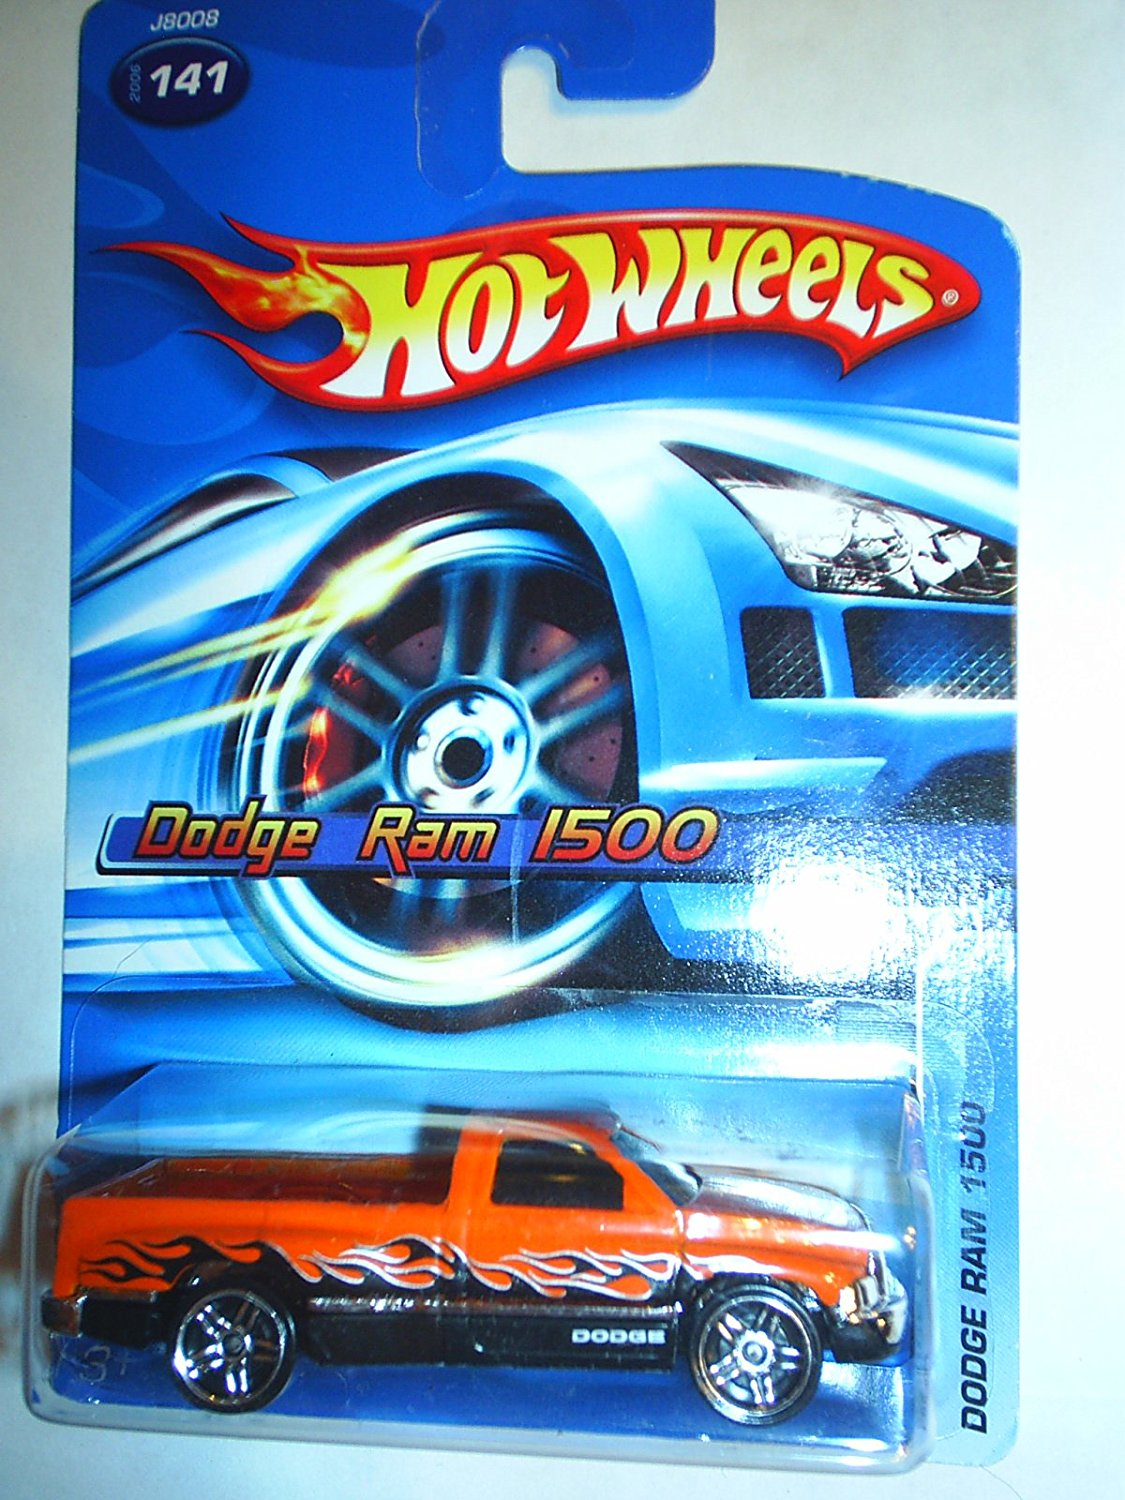 Mattel Hot Wheels 2006 1:64 Scale Orange & Black Flamed Dodge Ram 1500 Die Cast Truck #141